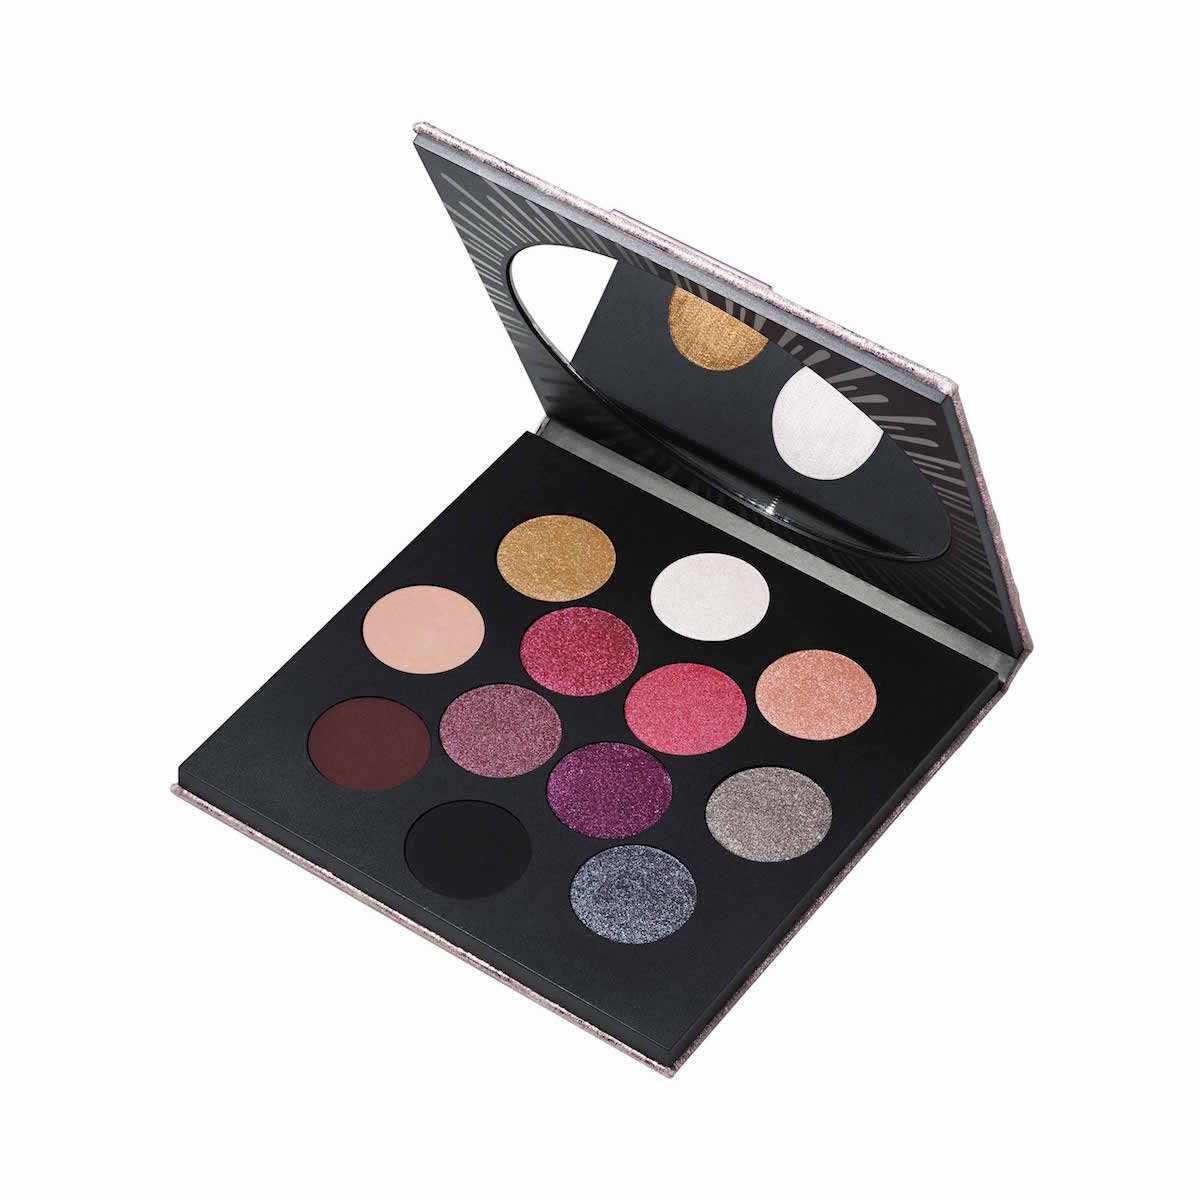 ROCKET TO FAME EYE SHADOW X 12 PALETTE (PALETA DE 12 SOMBRAS DE OJOS)